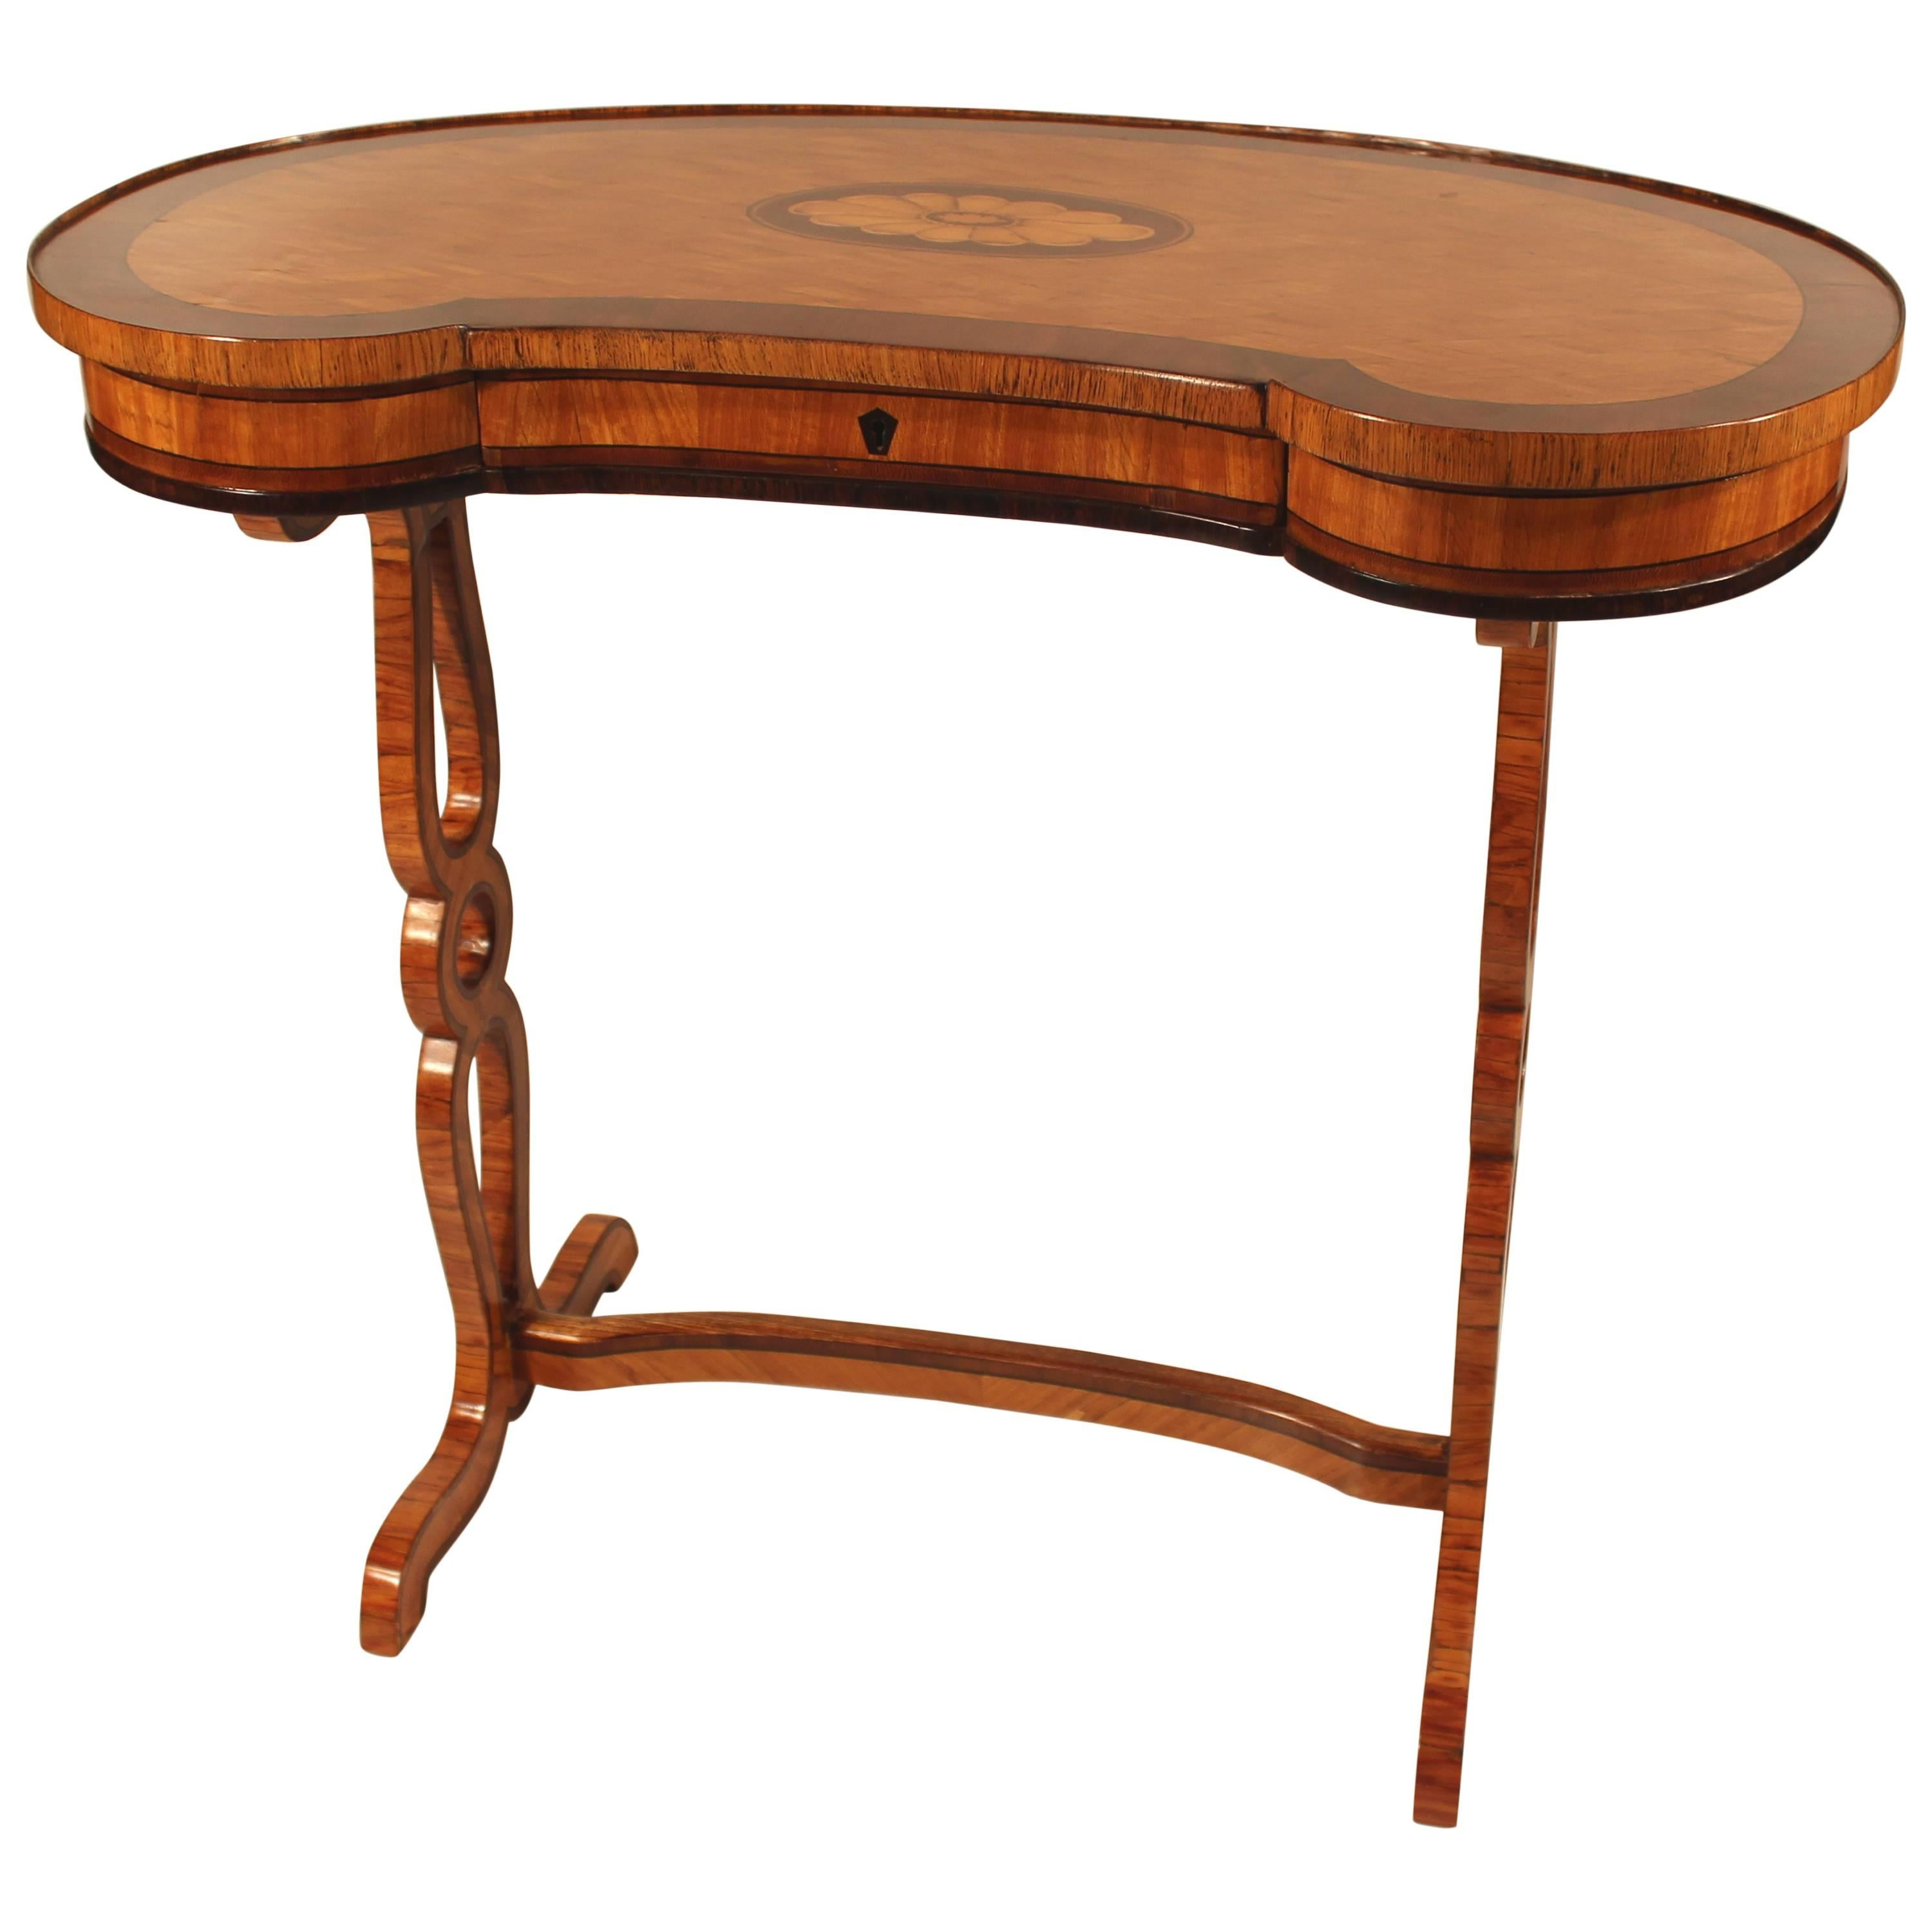 19th Century French Restauration Table